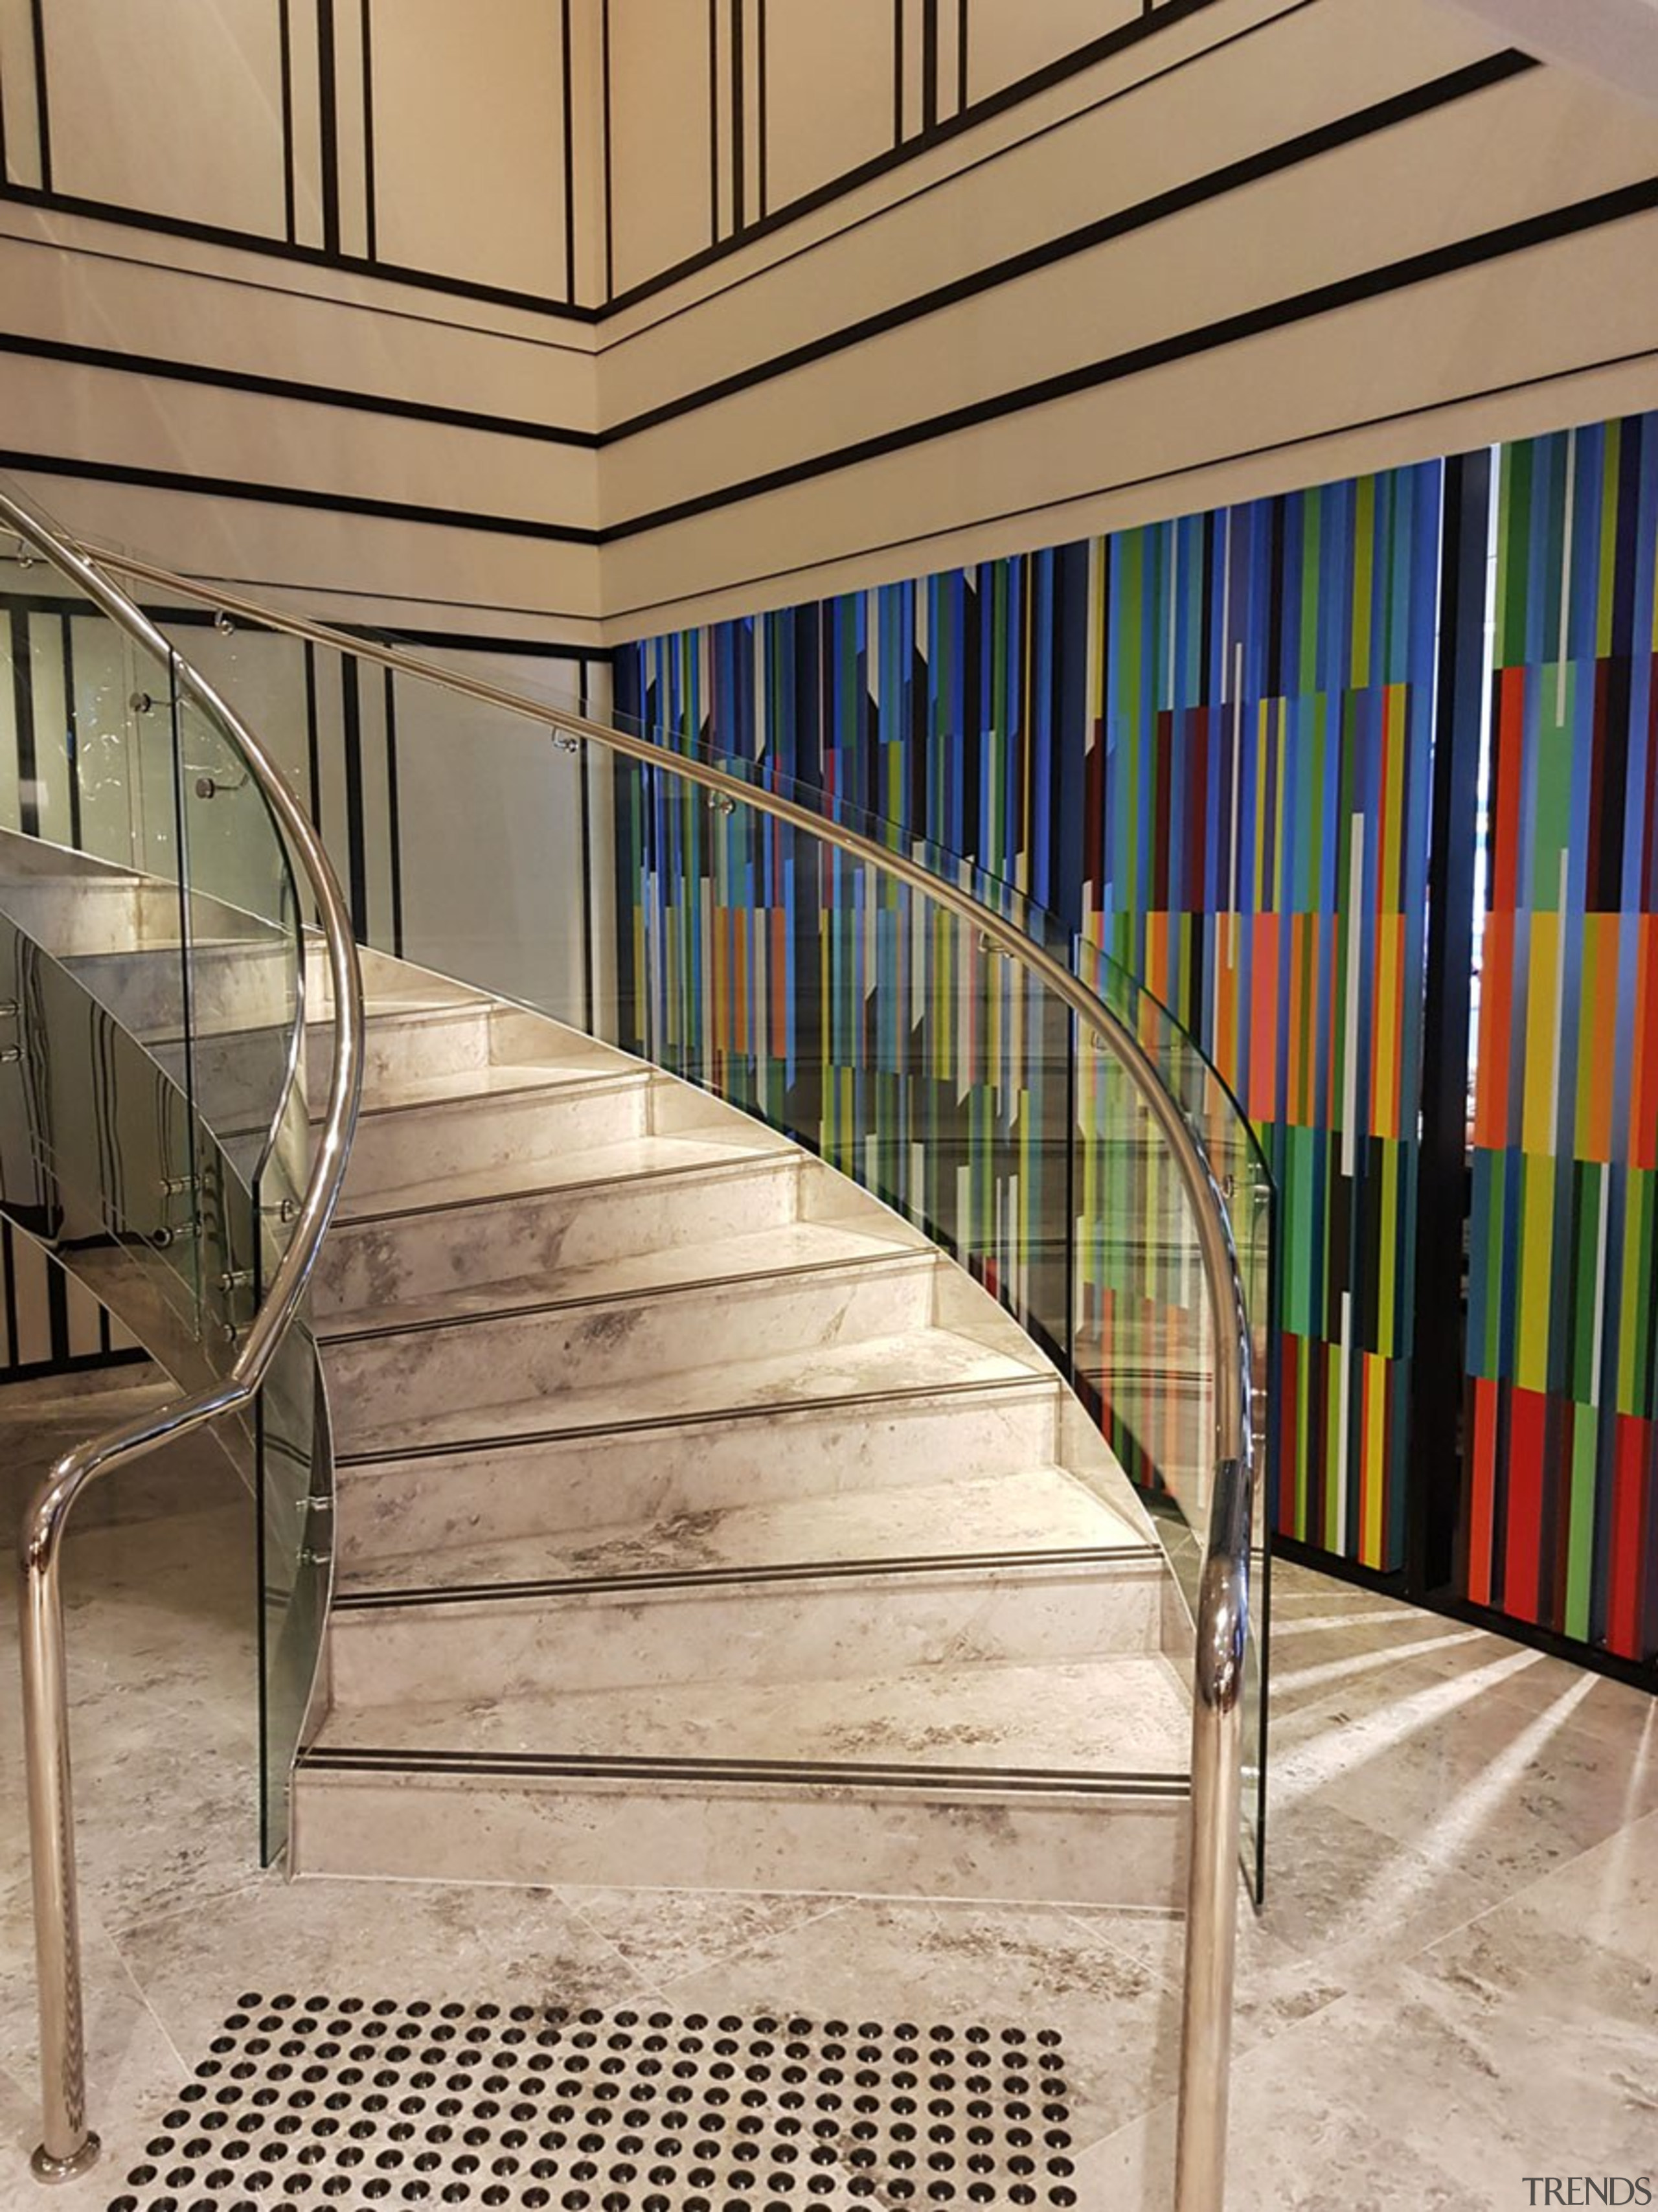 Doubletree Hilton 5 - architecture | building | architecture, building, design, floor, glass, handrail, interior design, line, room, stairs, orange